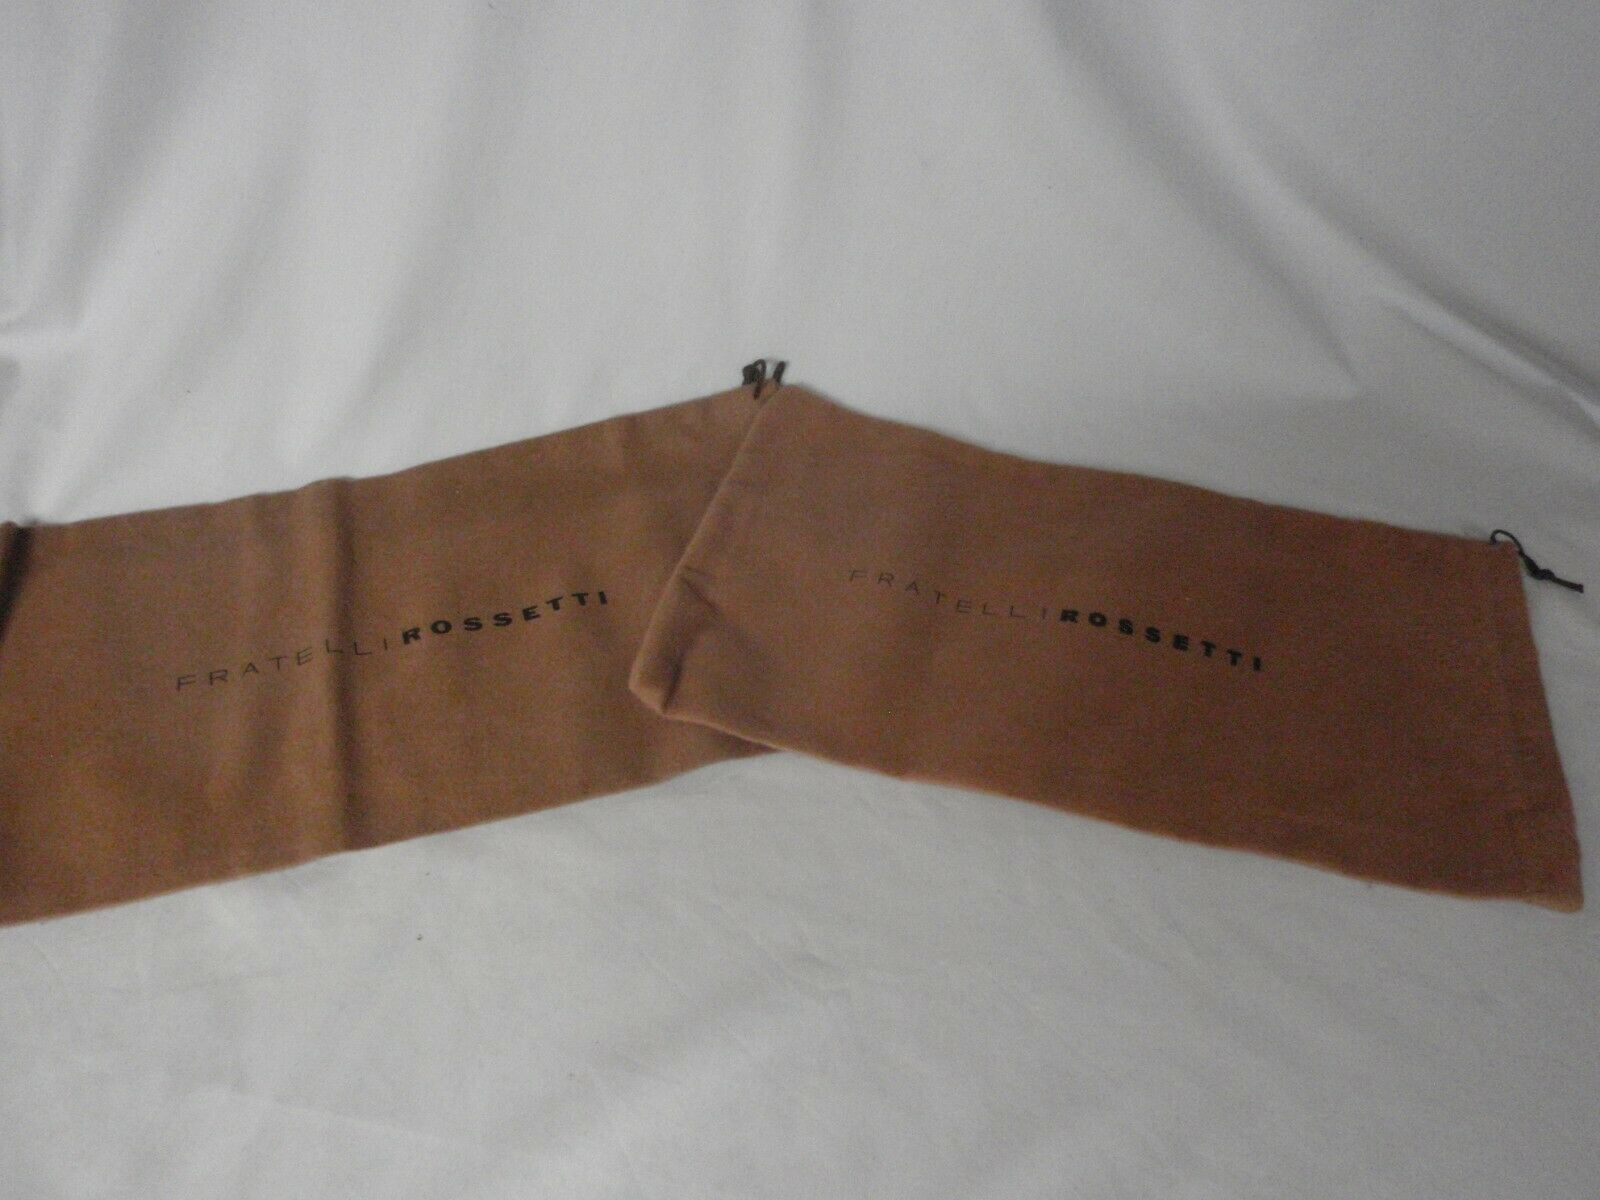 NEW FRATELLI ROSSETTI Brown Cotton Shoebags Sleeper Dustbags Sleeper Bags 1 pair